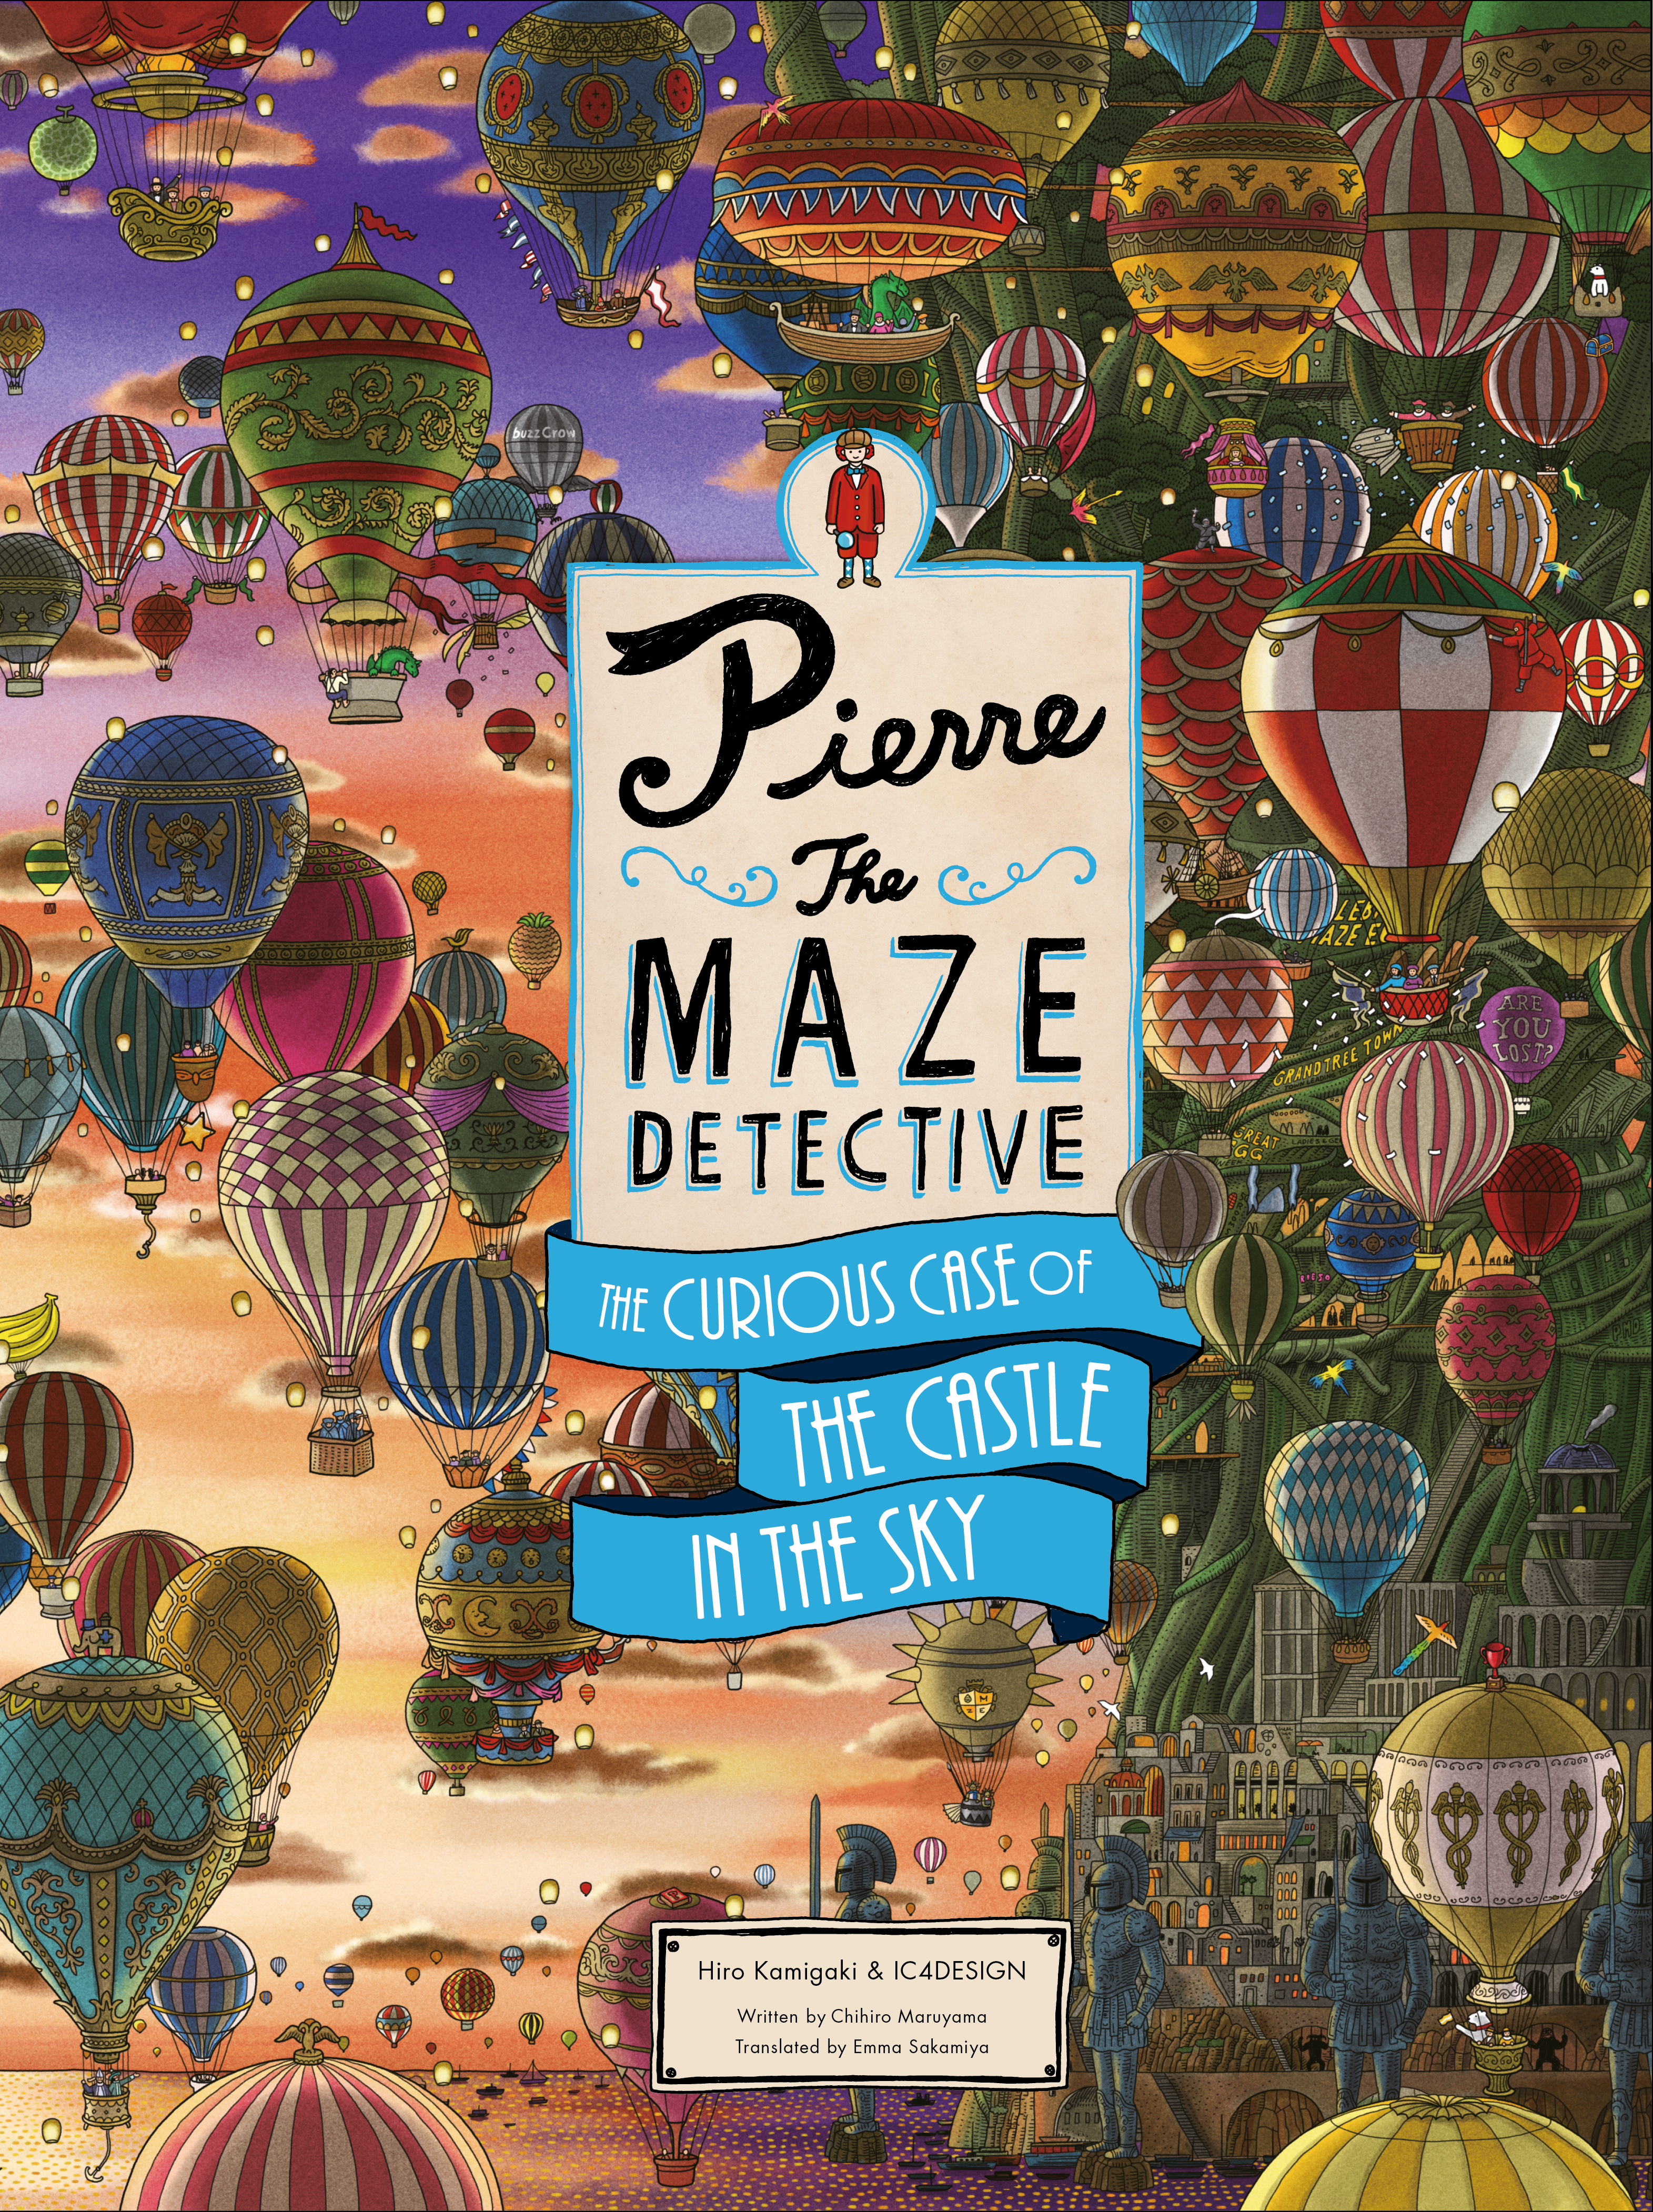 Pierre The Maze Detective: The Curious Case of the Castle in the Sky - Product Thumbnail